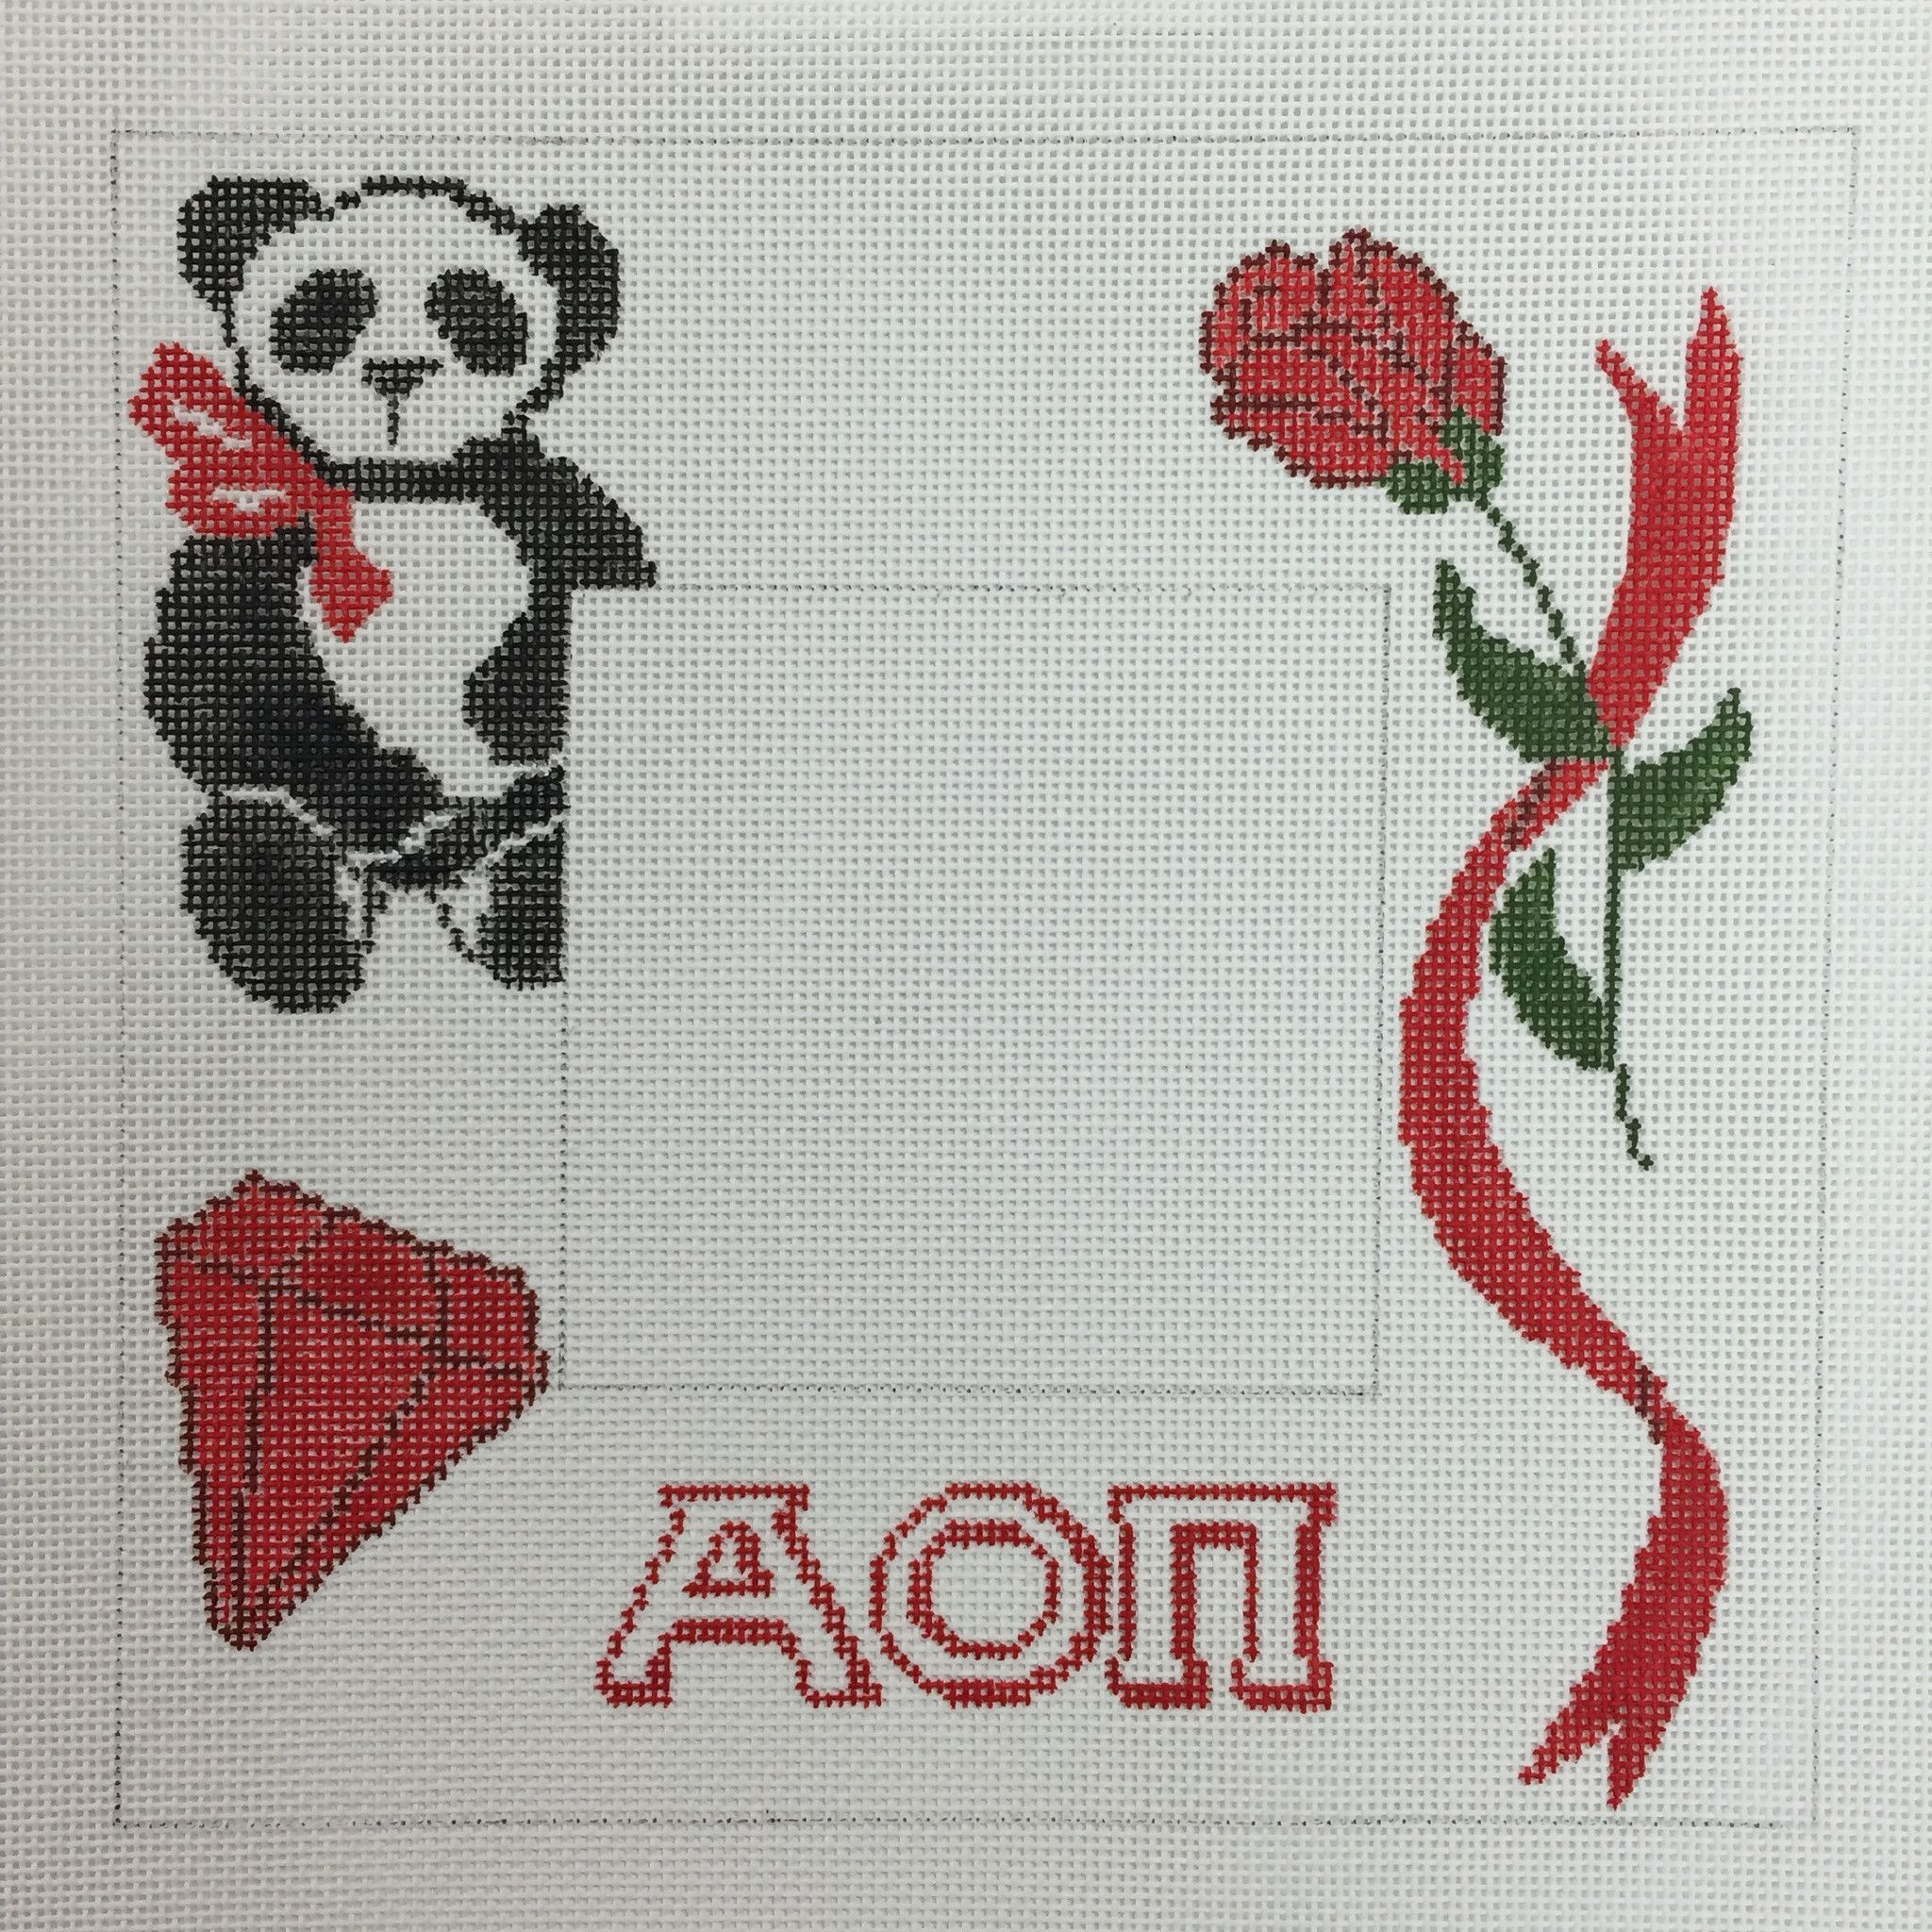 Alpha Omicron Pi Picture Frame needlepoint canvas | Products ...